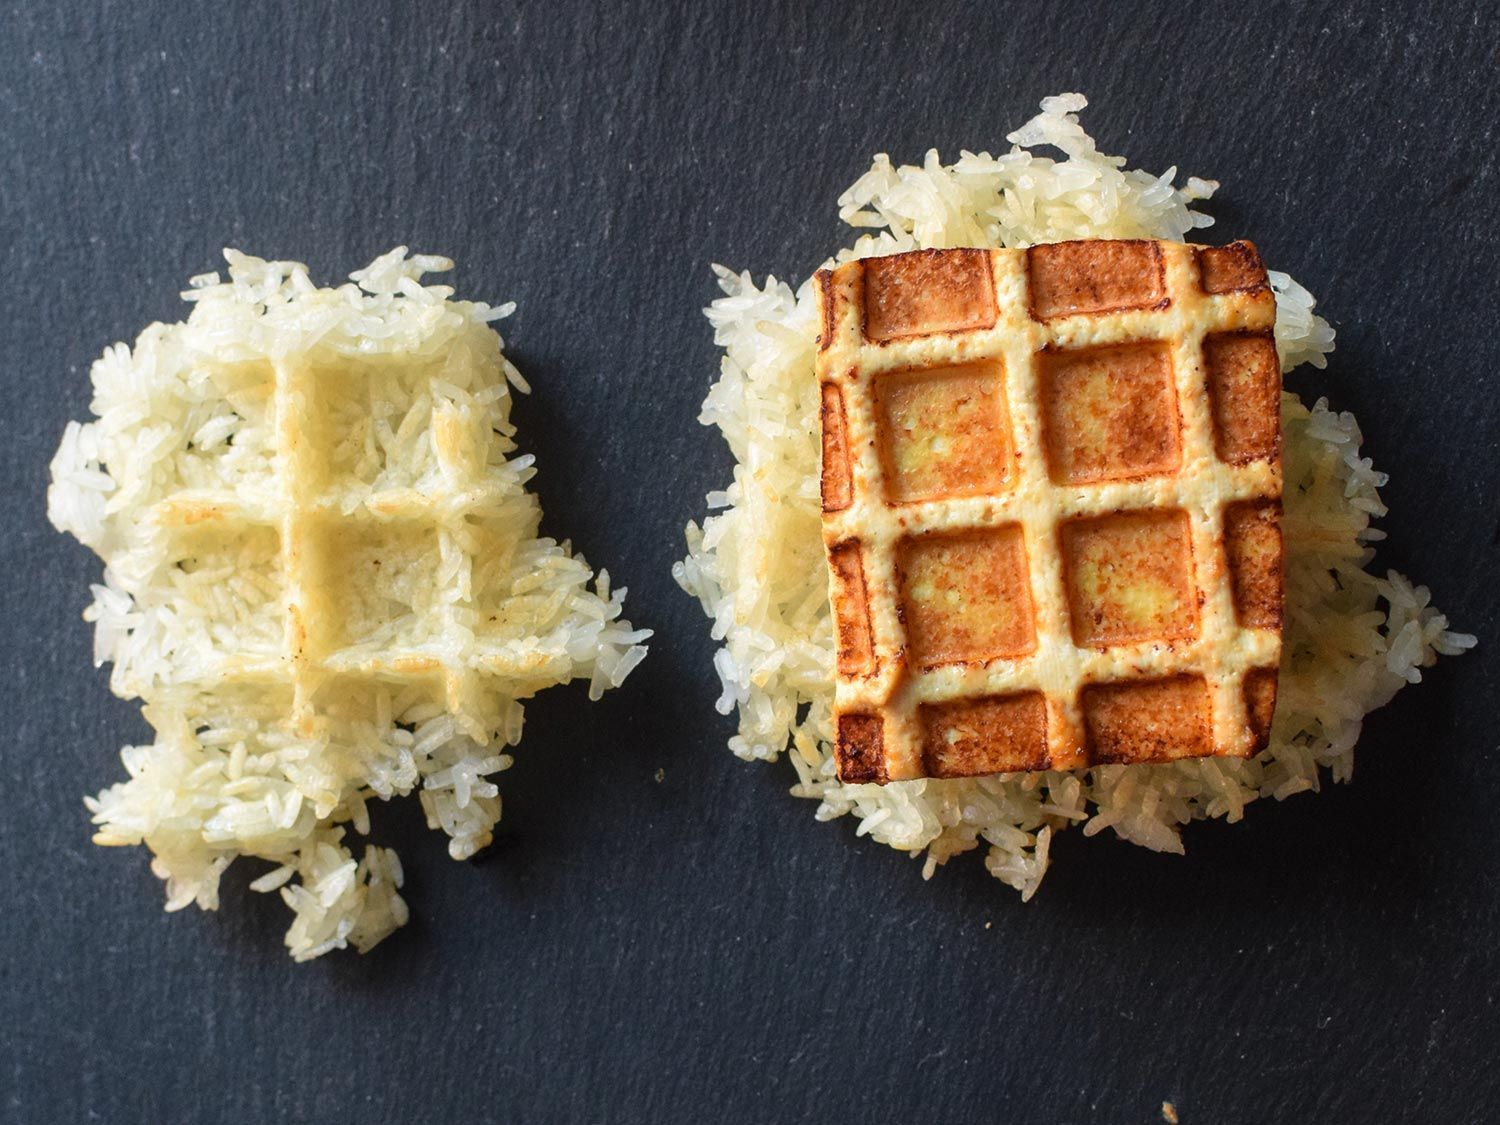 Use Your Waffle Iron for Seriously Crispy Tofu One of the best parts about fried tofu is the contrast between the crispy outside and the pillowy soft inside. With deep frying, getting there means a lot of oil. With stir-frying it means a lot of, well, stirring. With waffling, it means neither. Low mess, low effort. Your Waffle Iron for Seriously Crispy Tofu One of the best parts about fried tofu is the contrast between the crispy outside and the pillowy soft inside. With deep frying, getting there means a lot of oil. With stir-frying it means a lot of, well, stirring. With waffling, it means neither. Low mess, low effort.One of the best parts about fried tofu i...